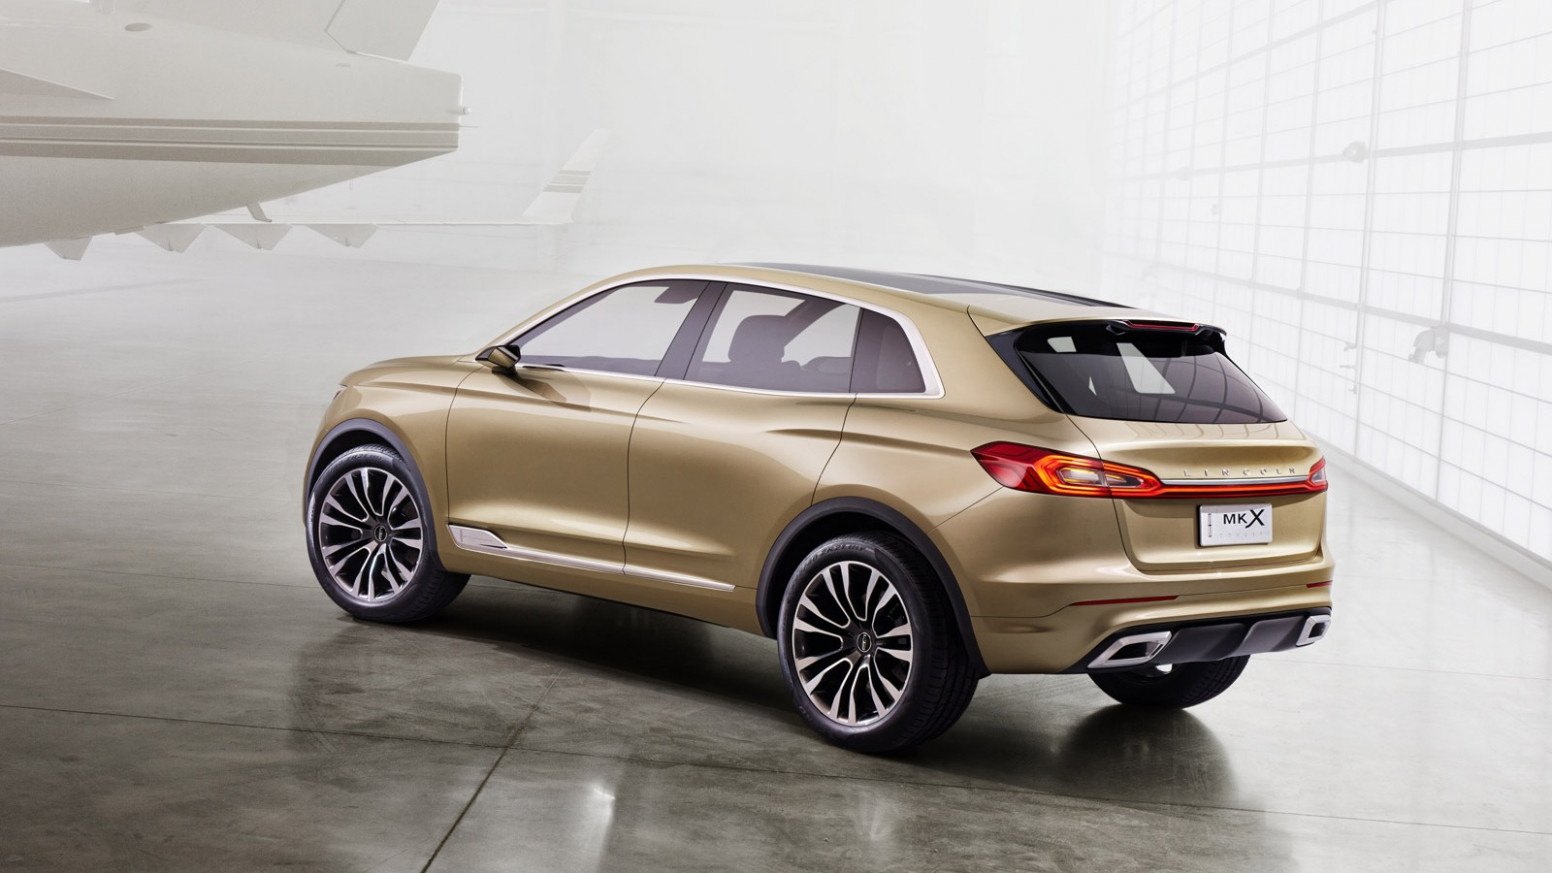 Spy Shoot 2022 Lincoln Mkx At Beijing Motor Show